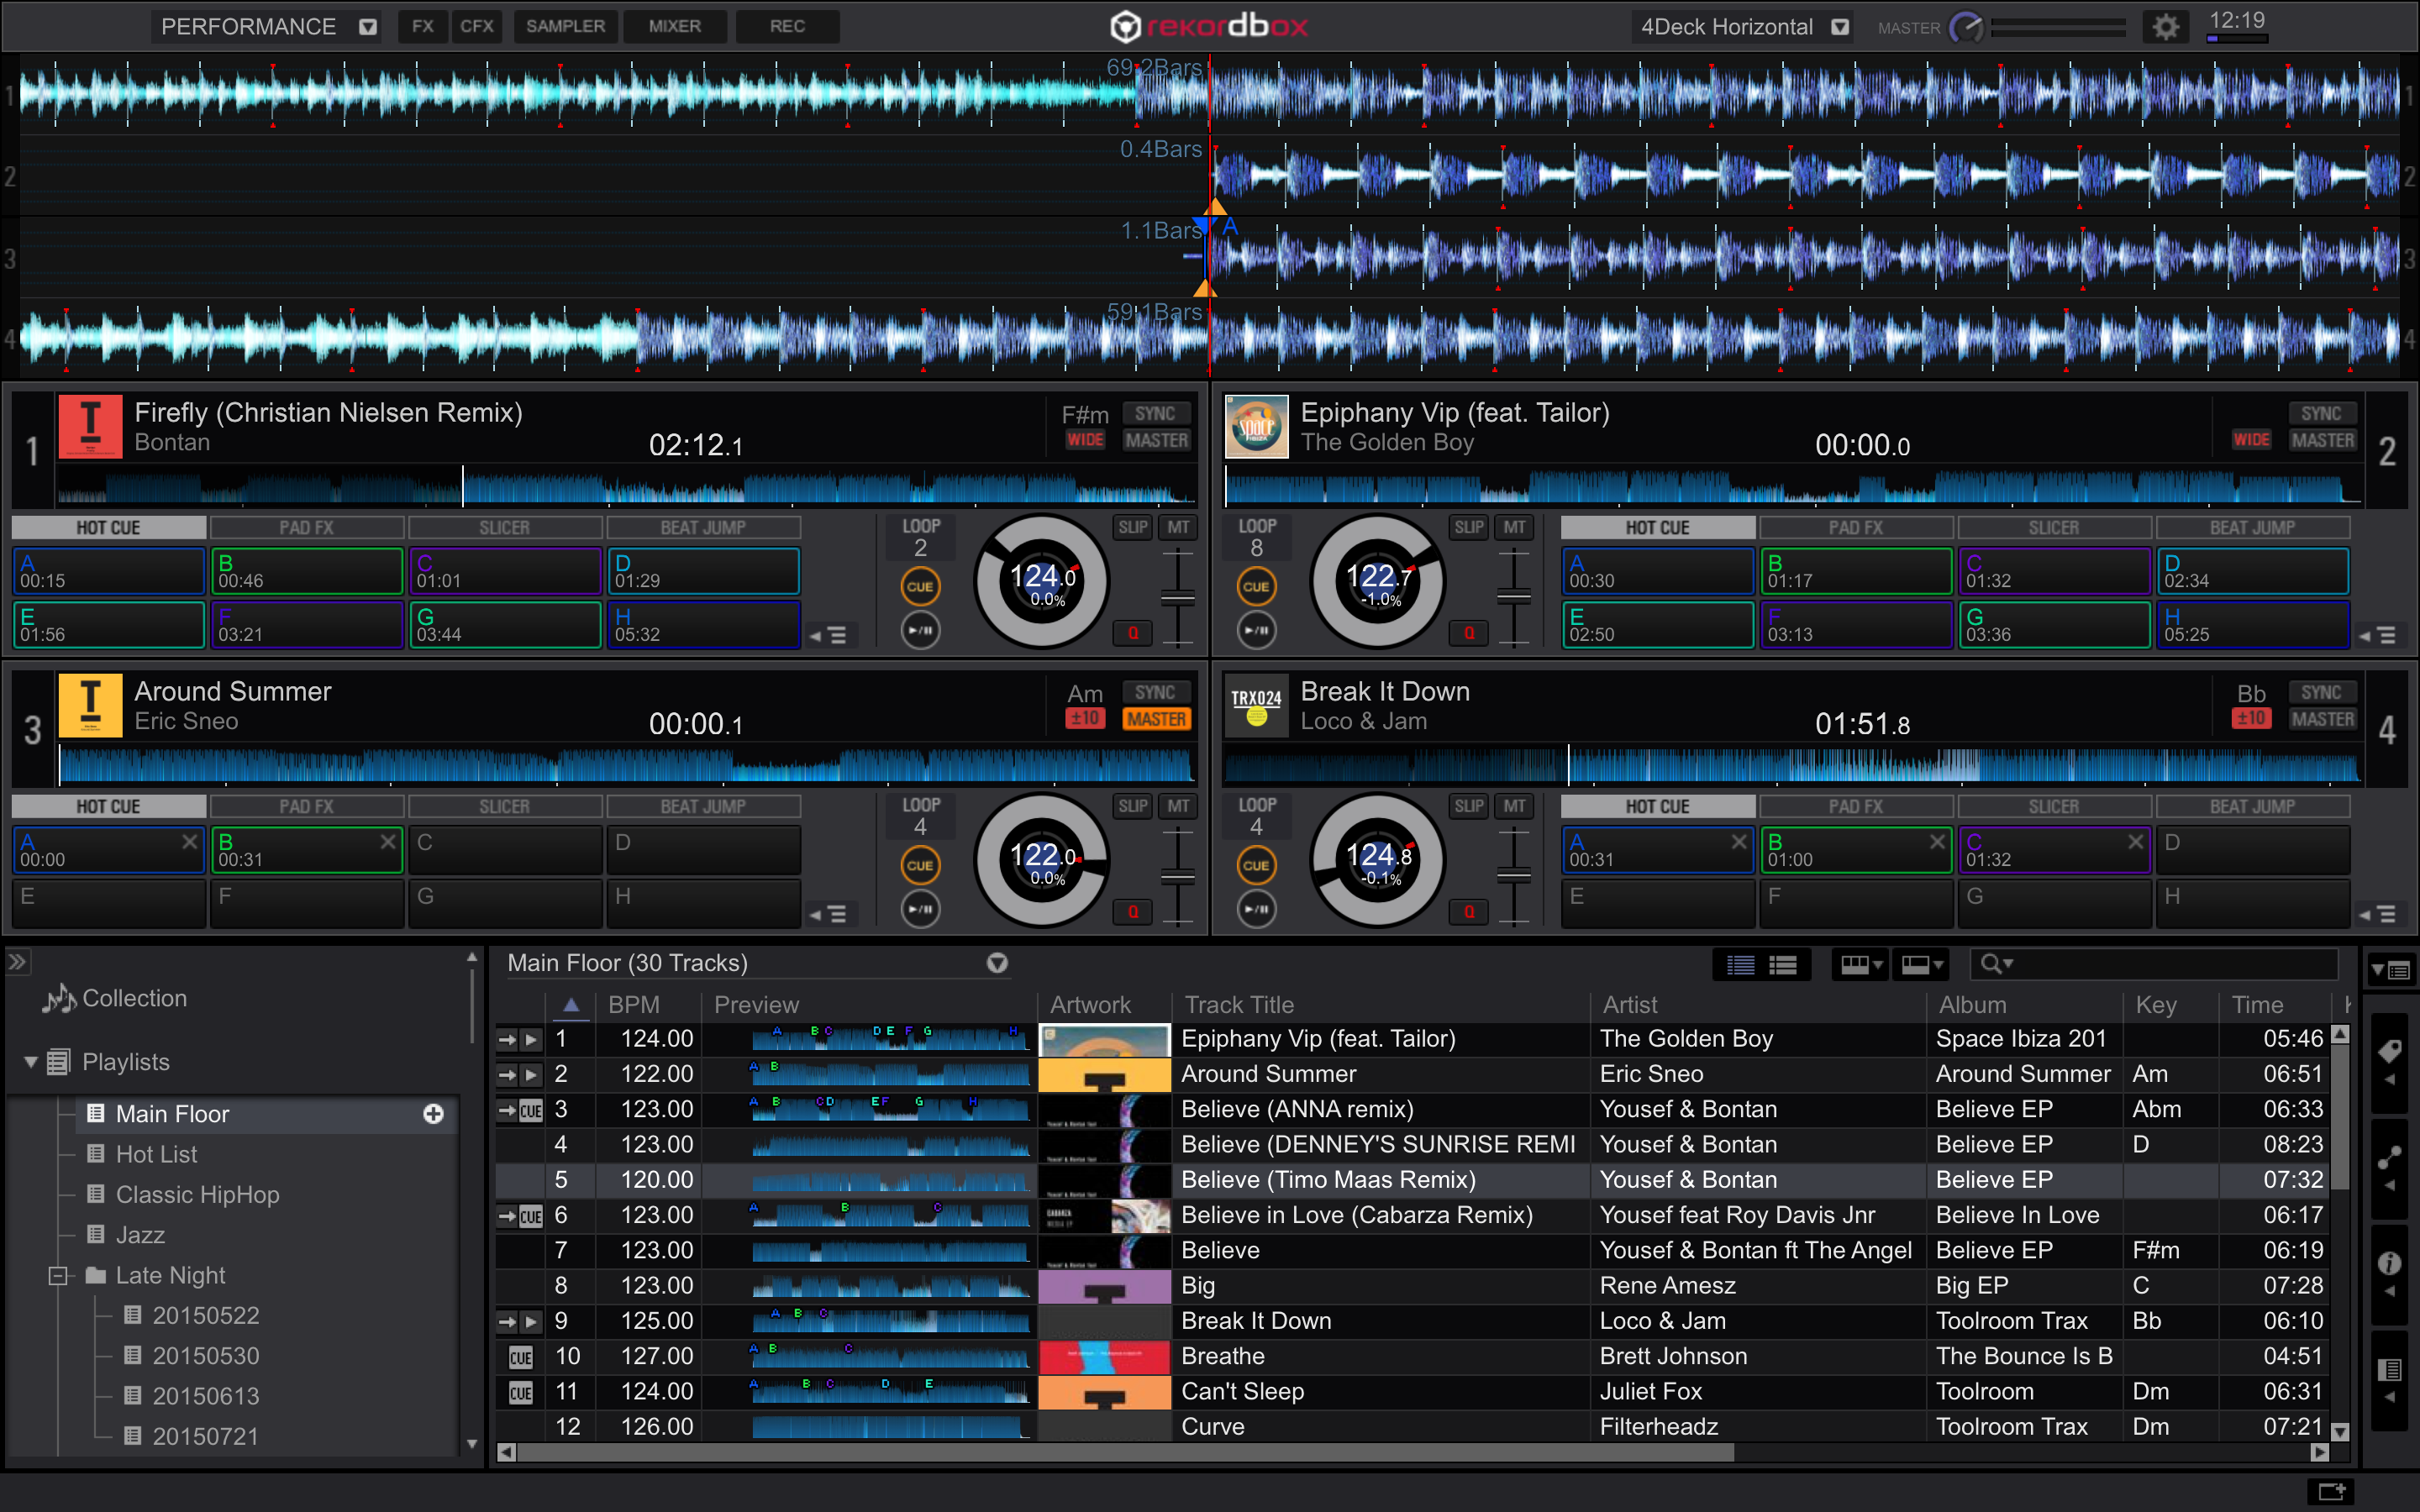 rekordbox dj 4deck horizontal